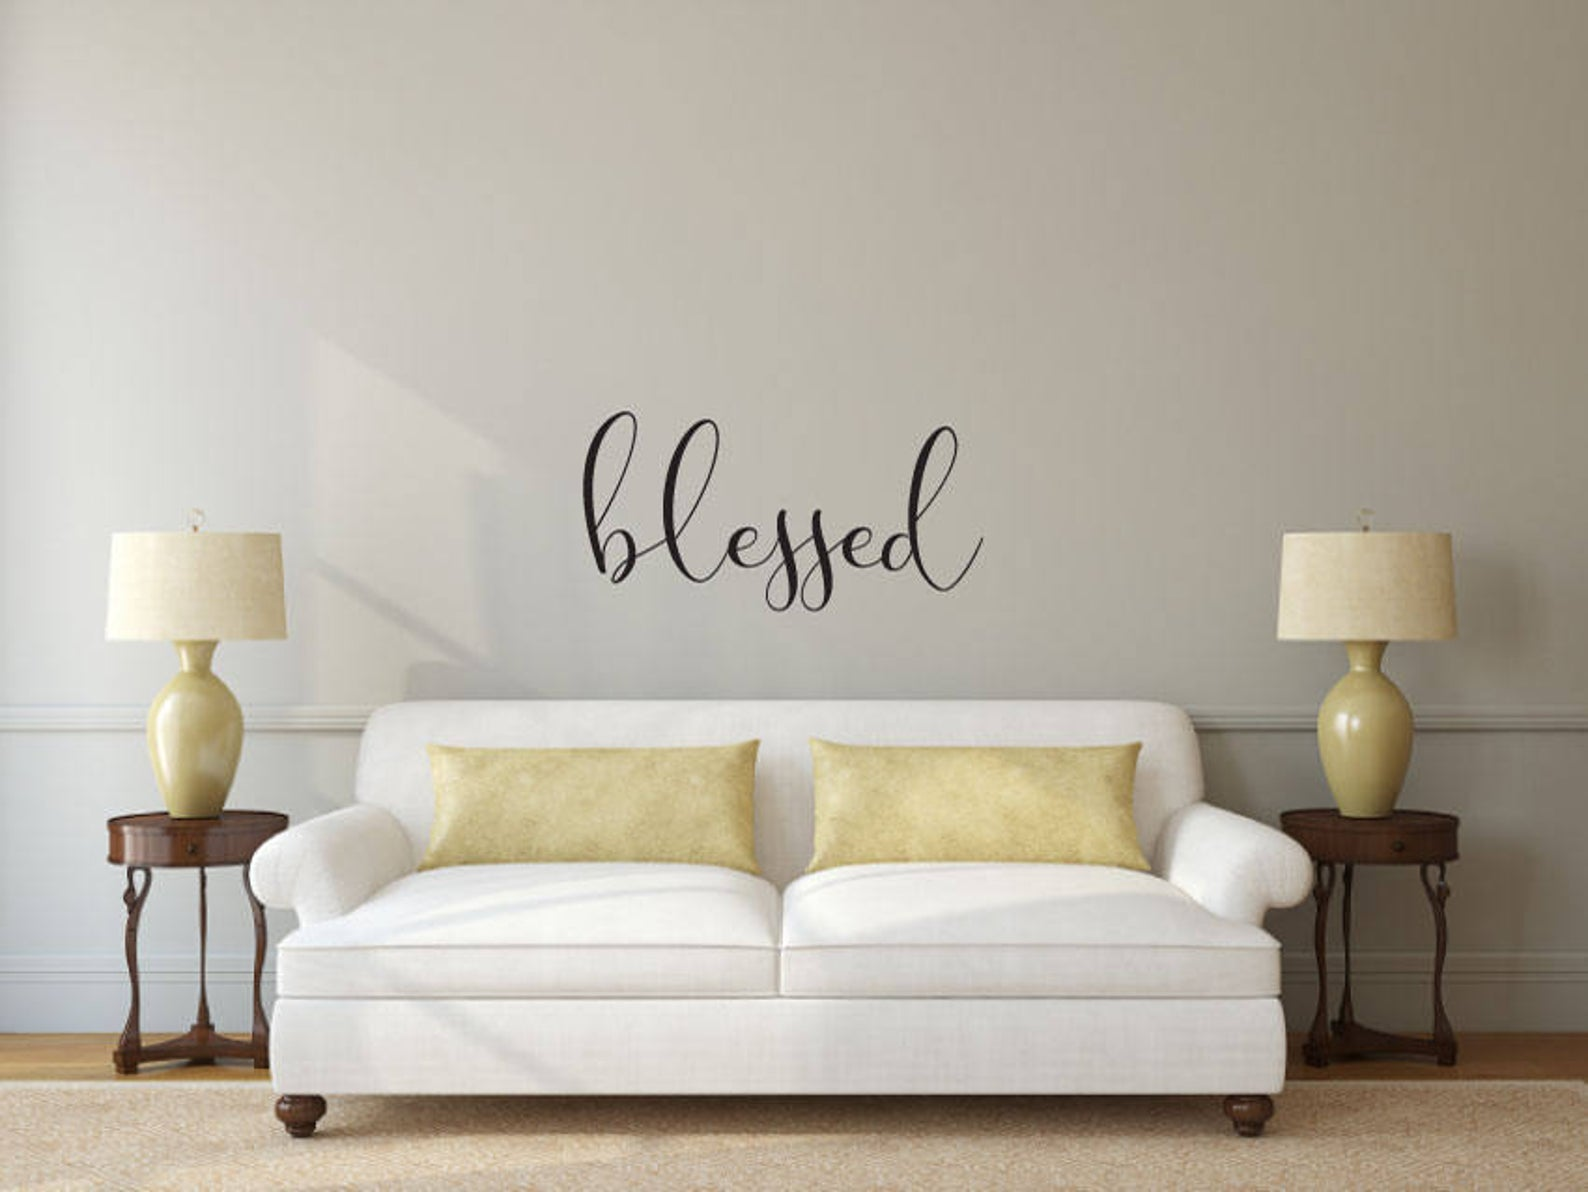 Blessed - Vinyl Decal Wall Art Decor Sticker - Home Decor Bedroom Nursery Baby Living Area House Warming Family Entry Hall Welcome Outdoor